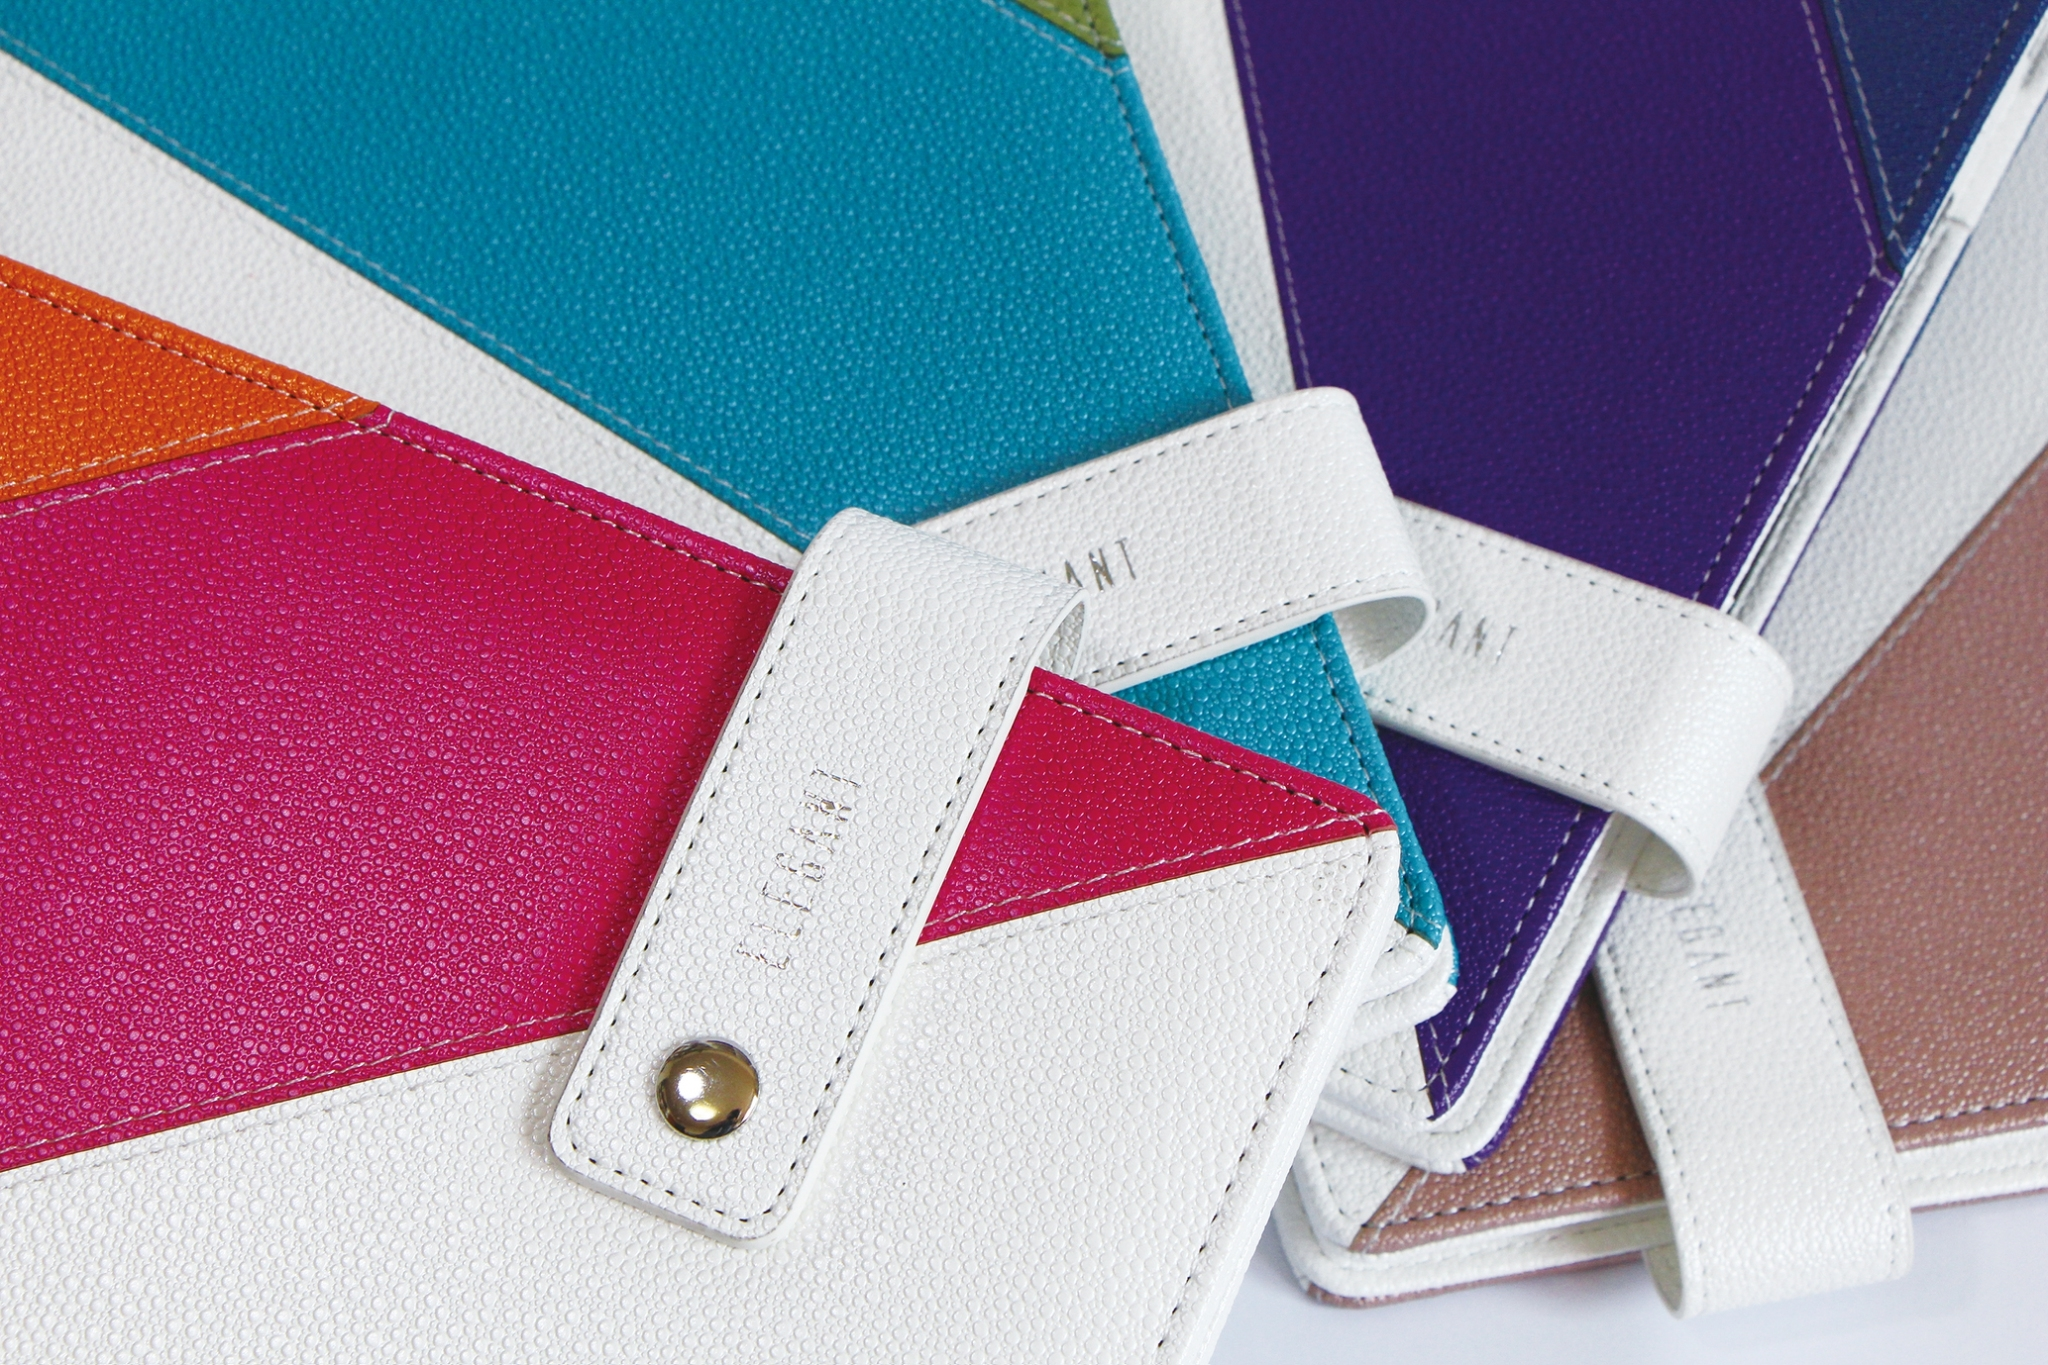 Mixed 3 Colors PU leather Journal - 2016 Latest contrast PU series